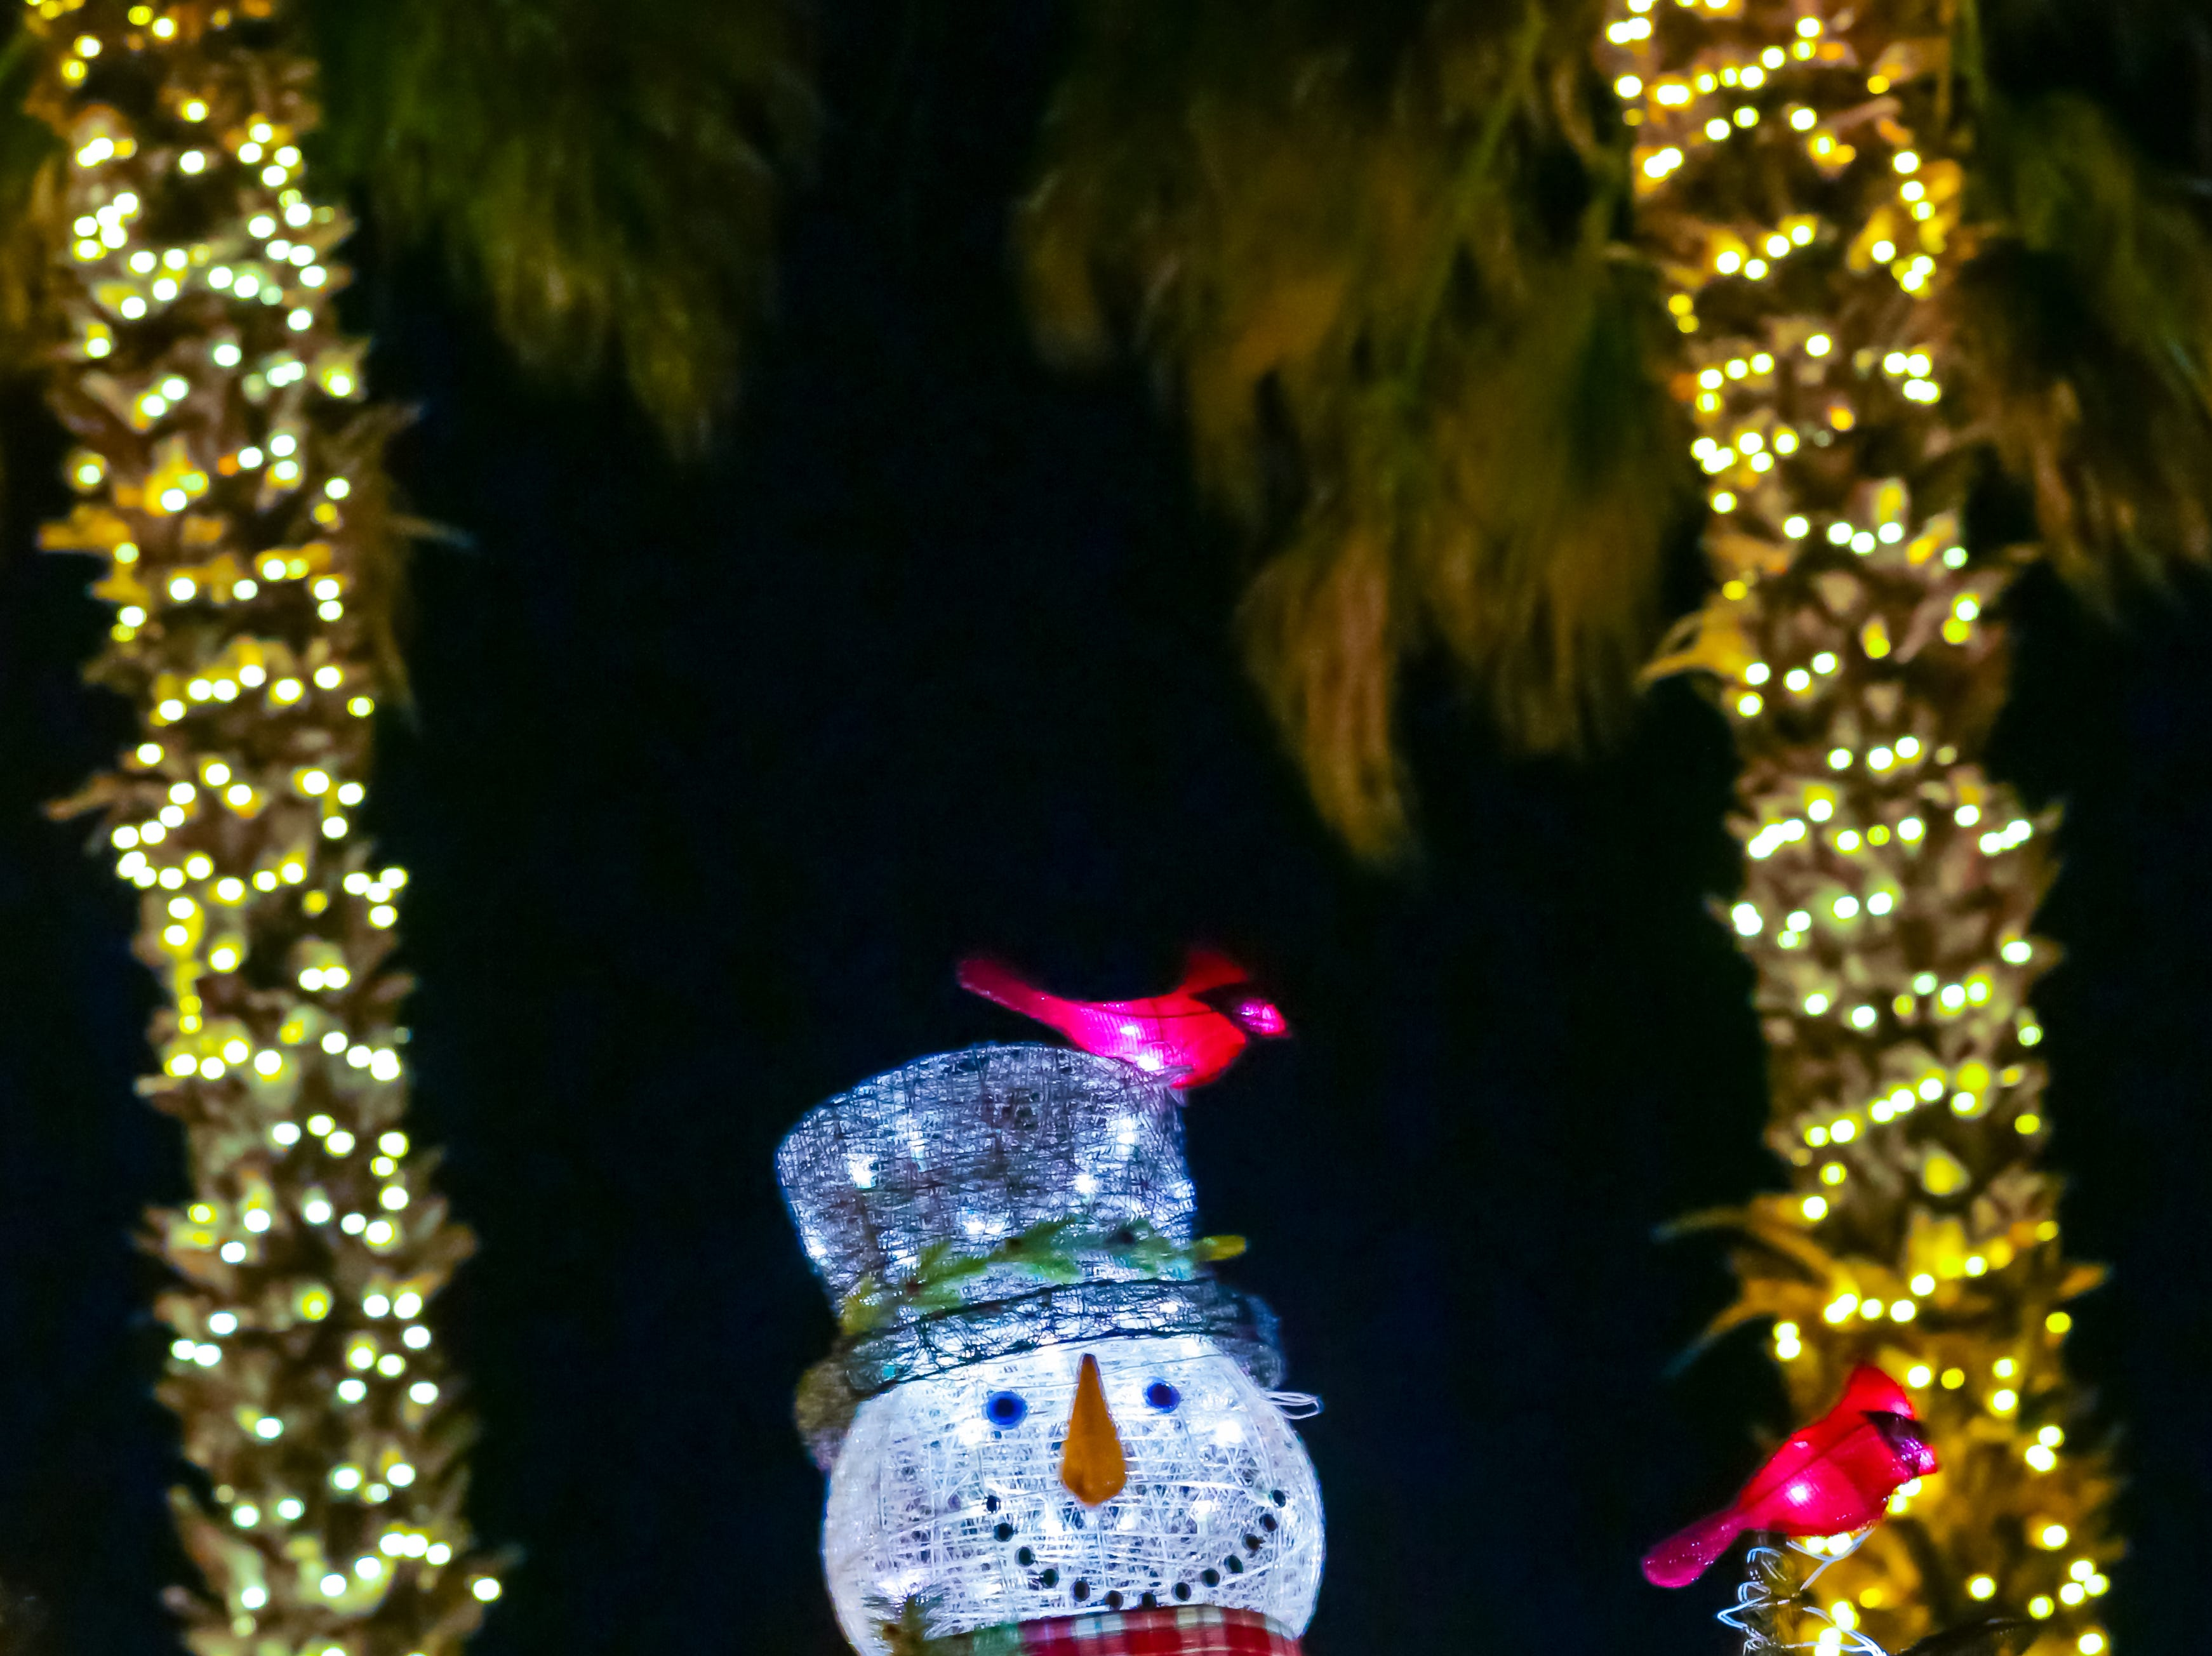 A glowing snowman is pictured at the Mesilla Plaza on Christmas Eve, Monday, Dec. 24, 2018.